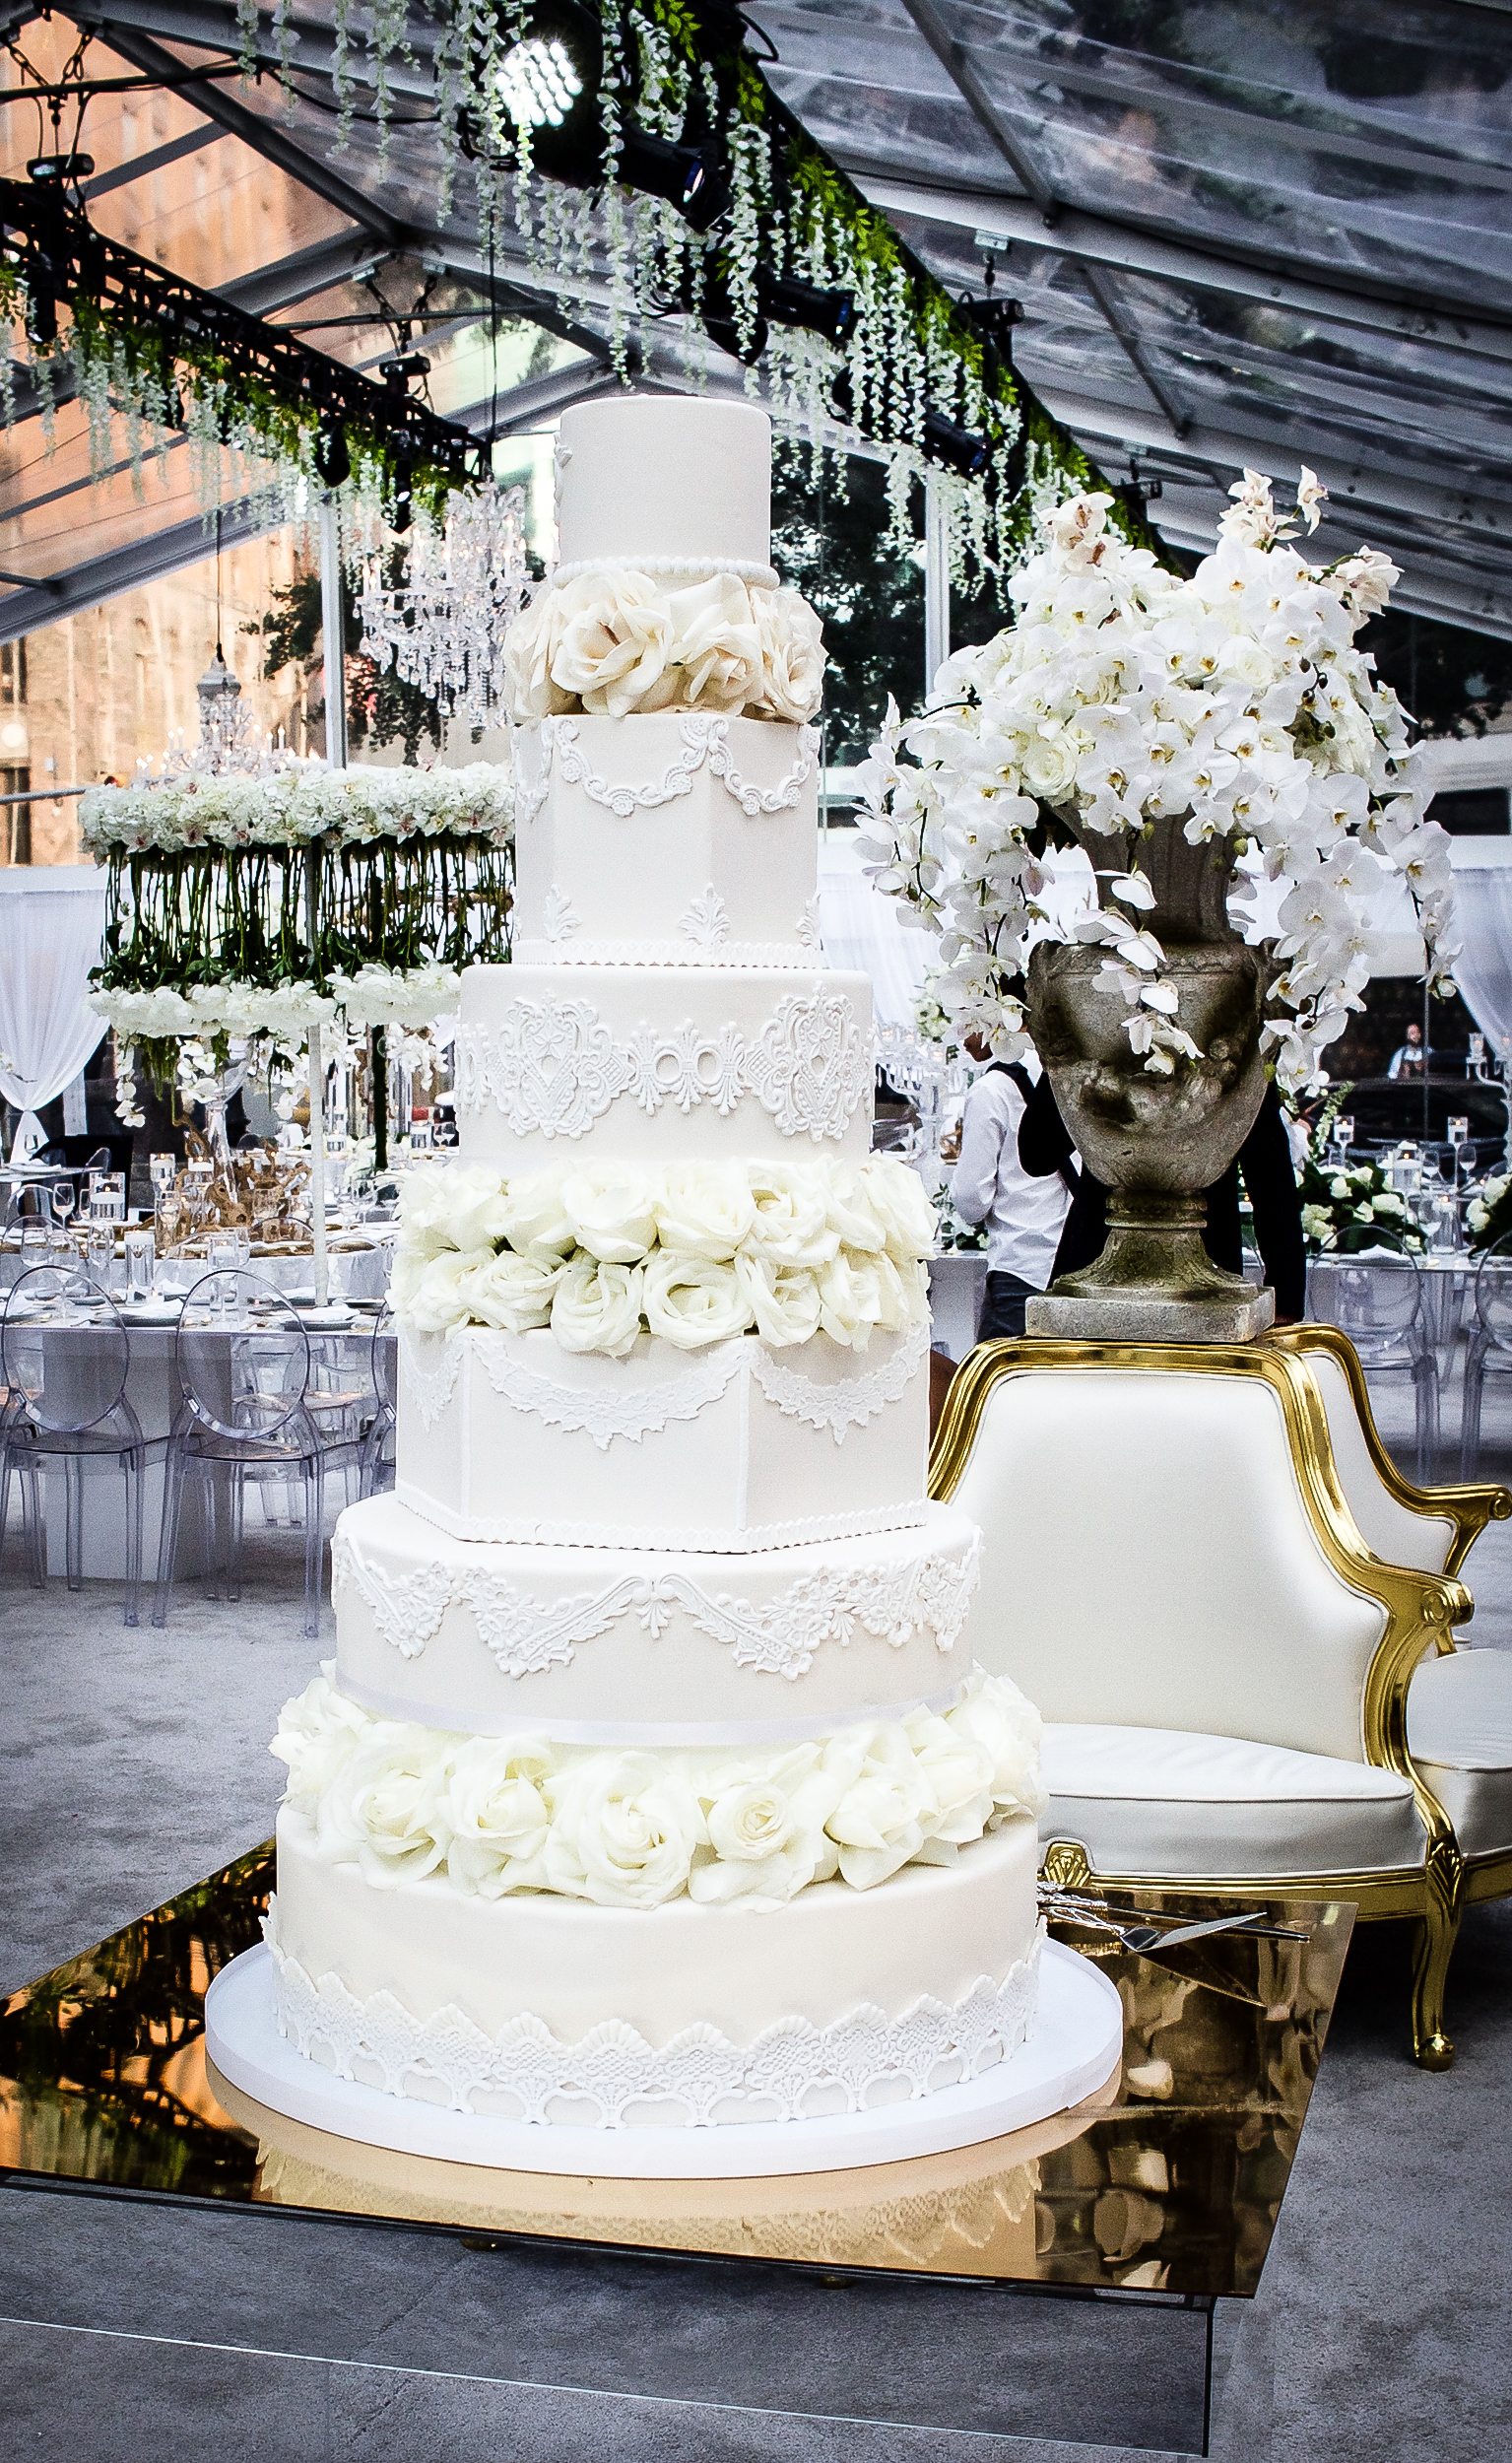 White wedding cake with white sugar roses between layers